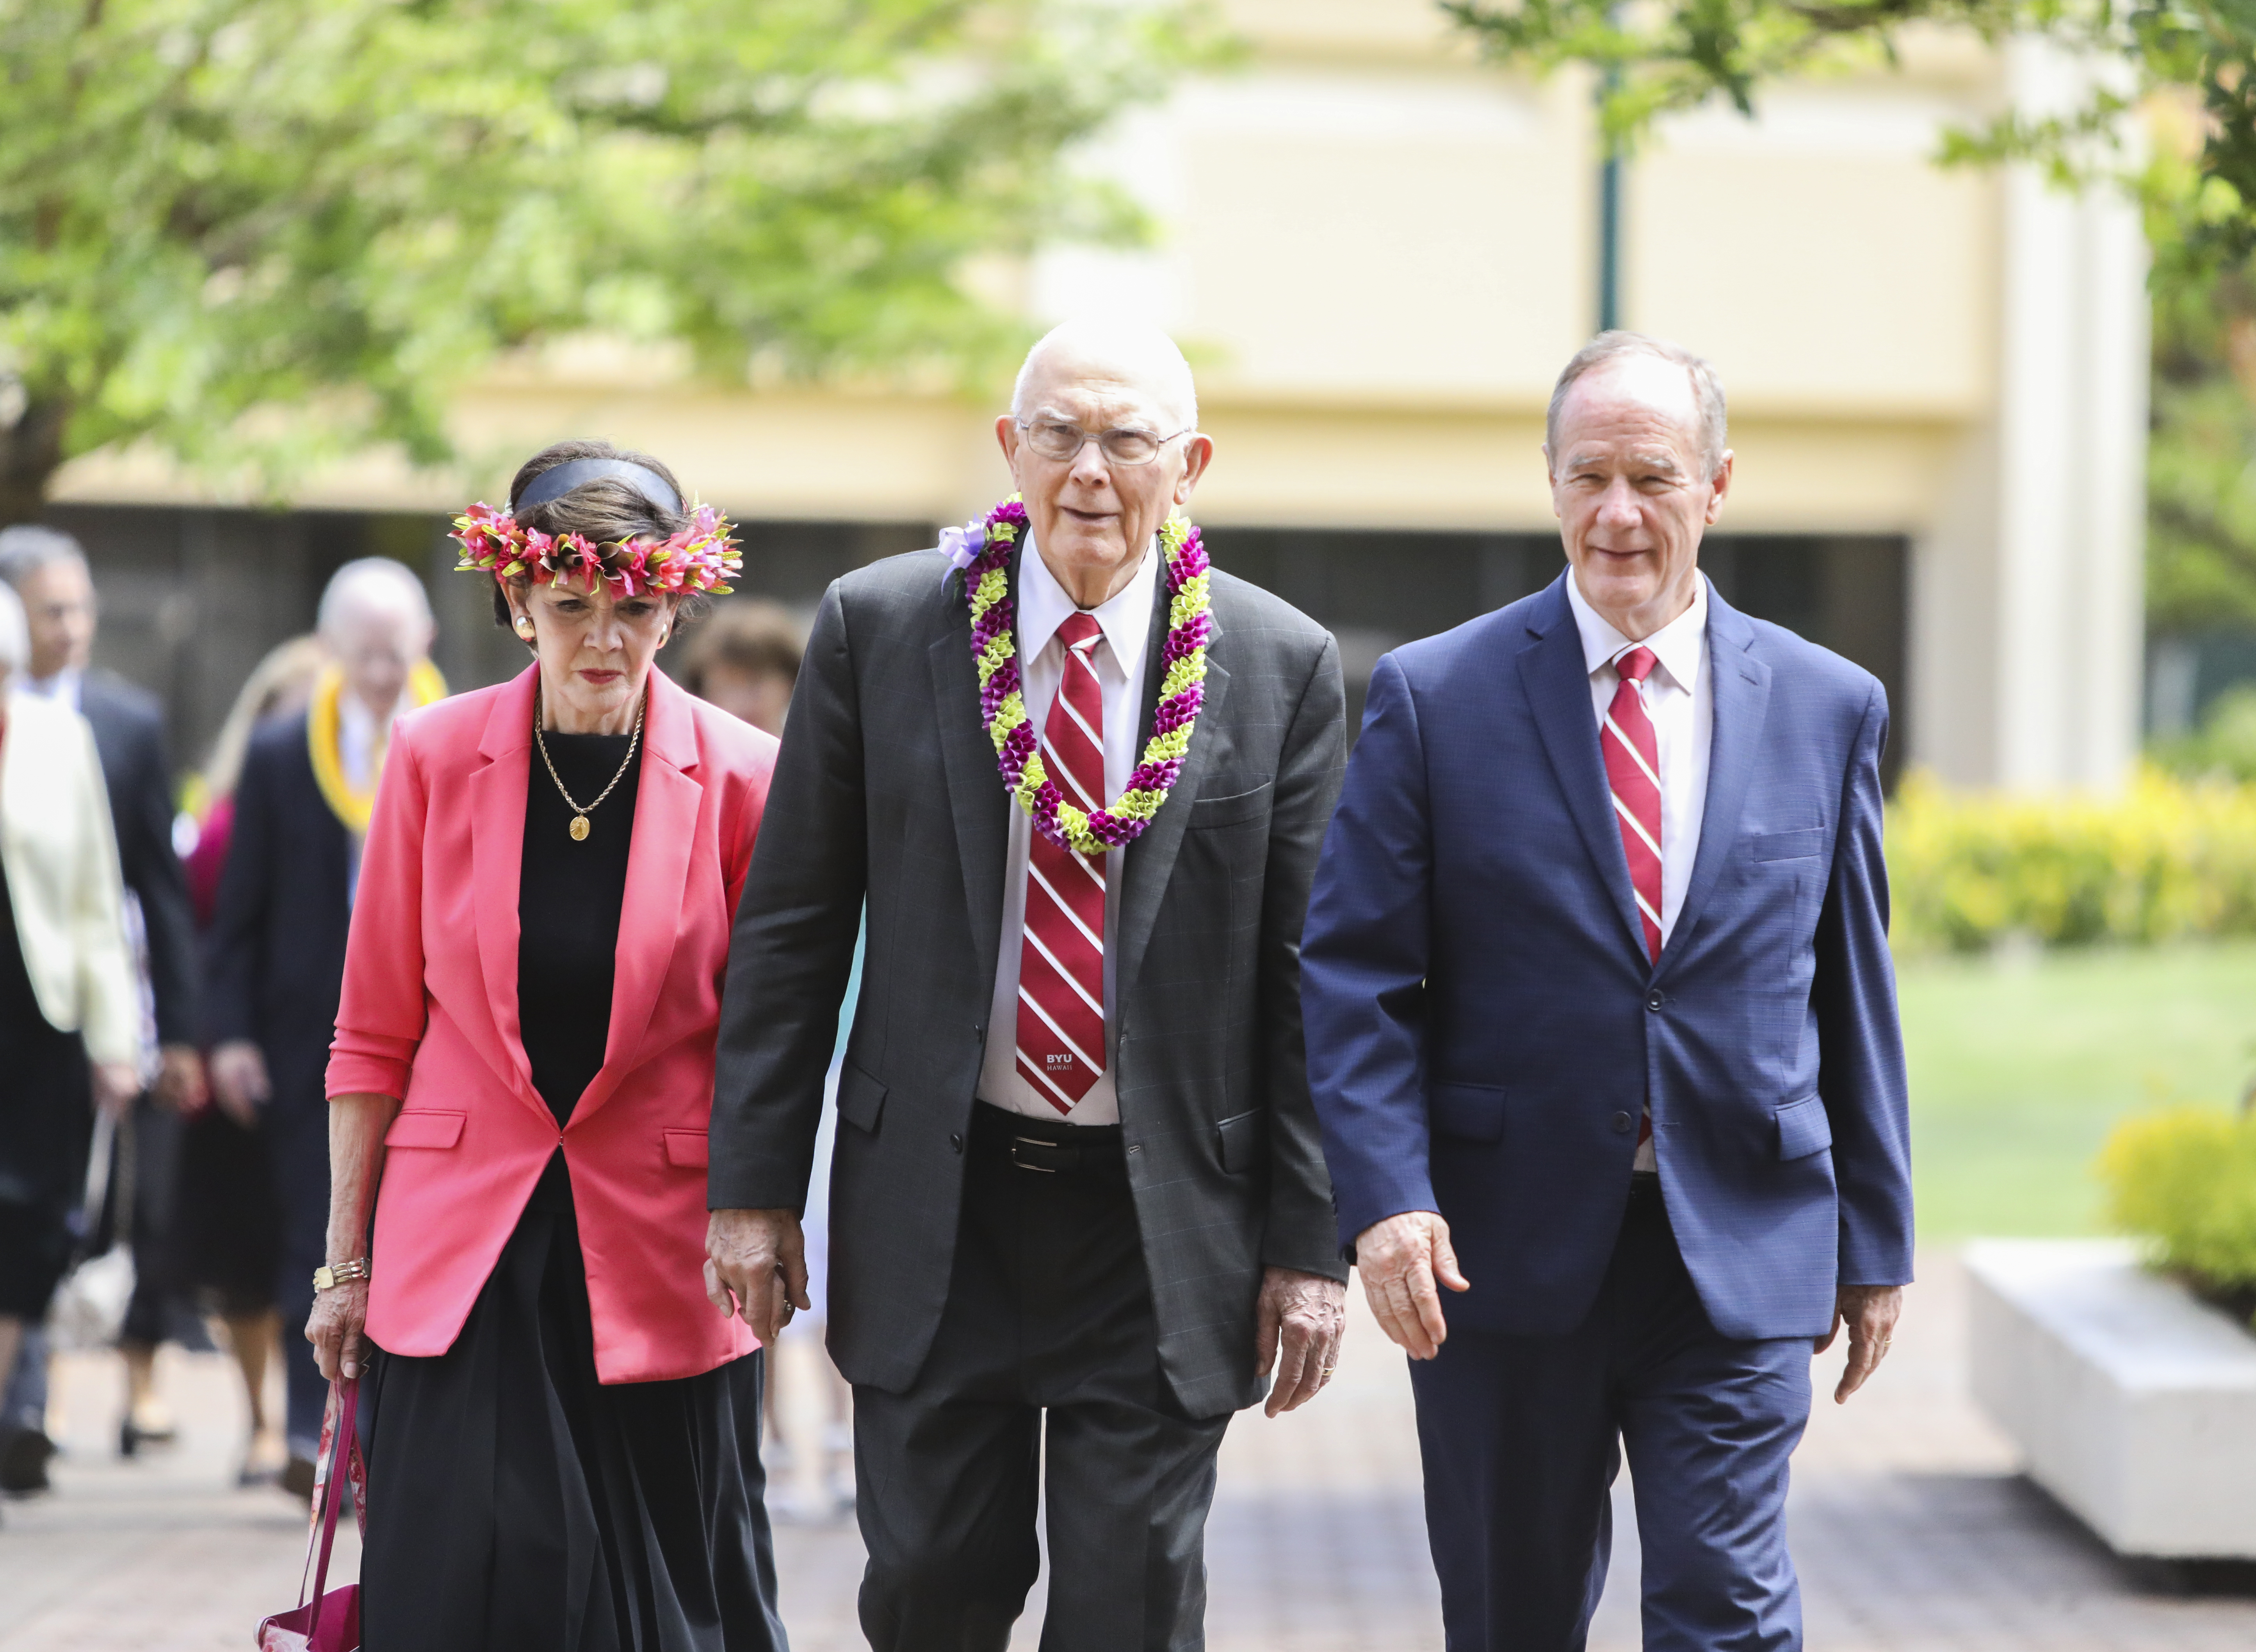 President Dallin H. Oaks, center, arrives at the George Q. Cannon Activities Center with his wife, Sister Kristen Oaks, and BYU-Hawaii President John S. Tanner, before a devotional on June 11, 2019.